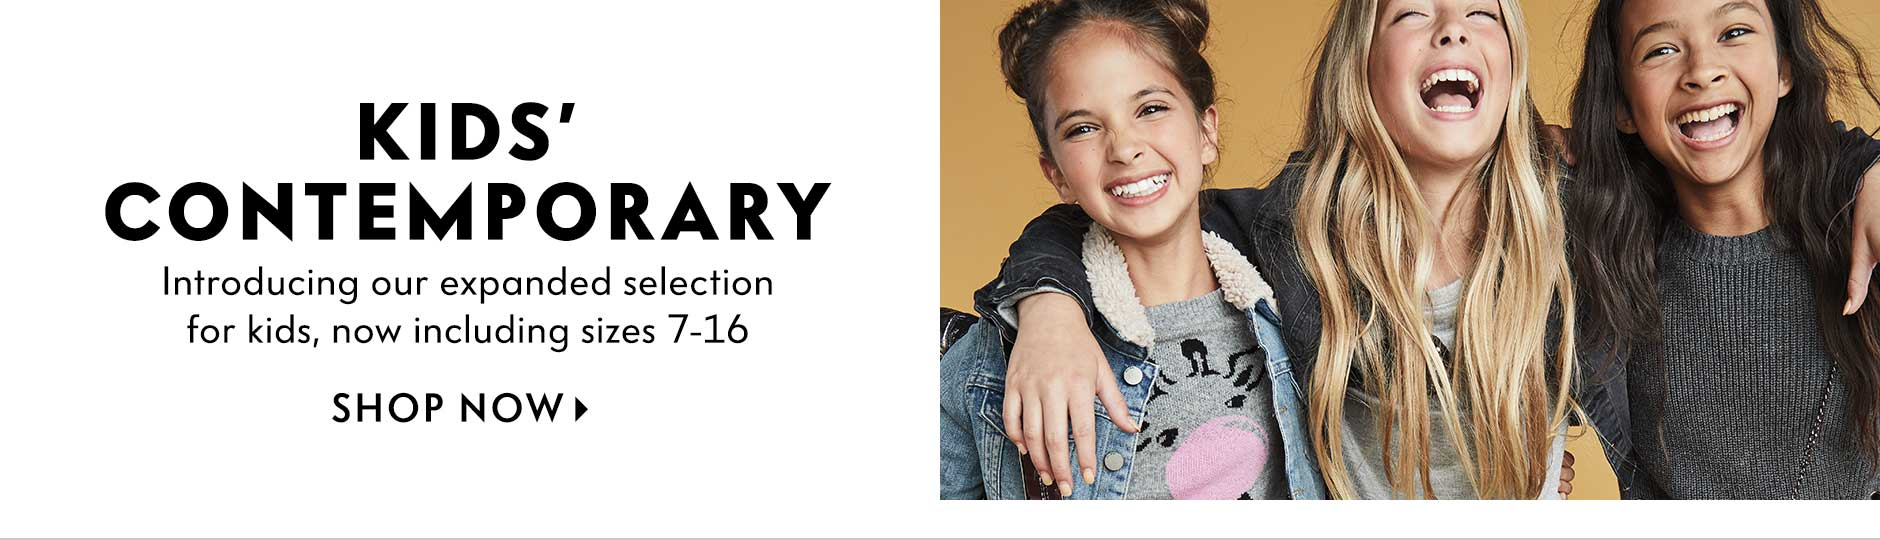 Kids' Contemporary - Introducing our expanded selection for kids, now including sizes 7-16